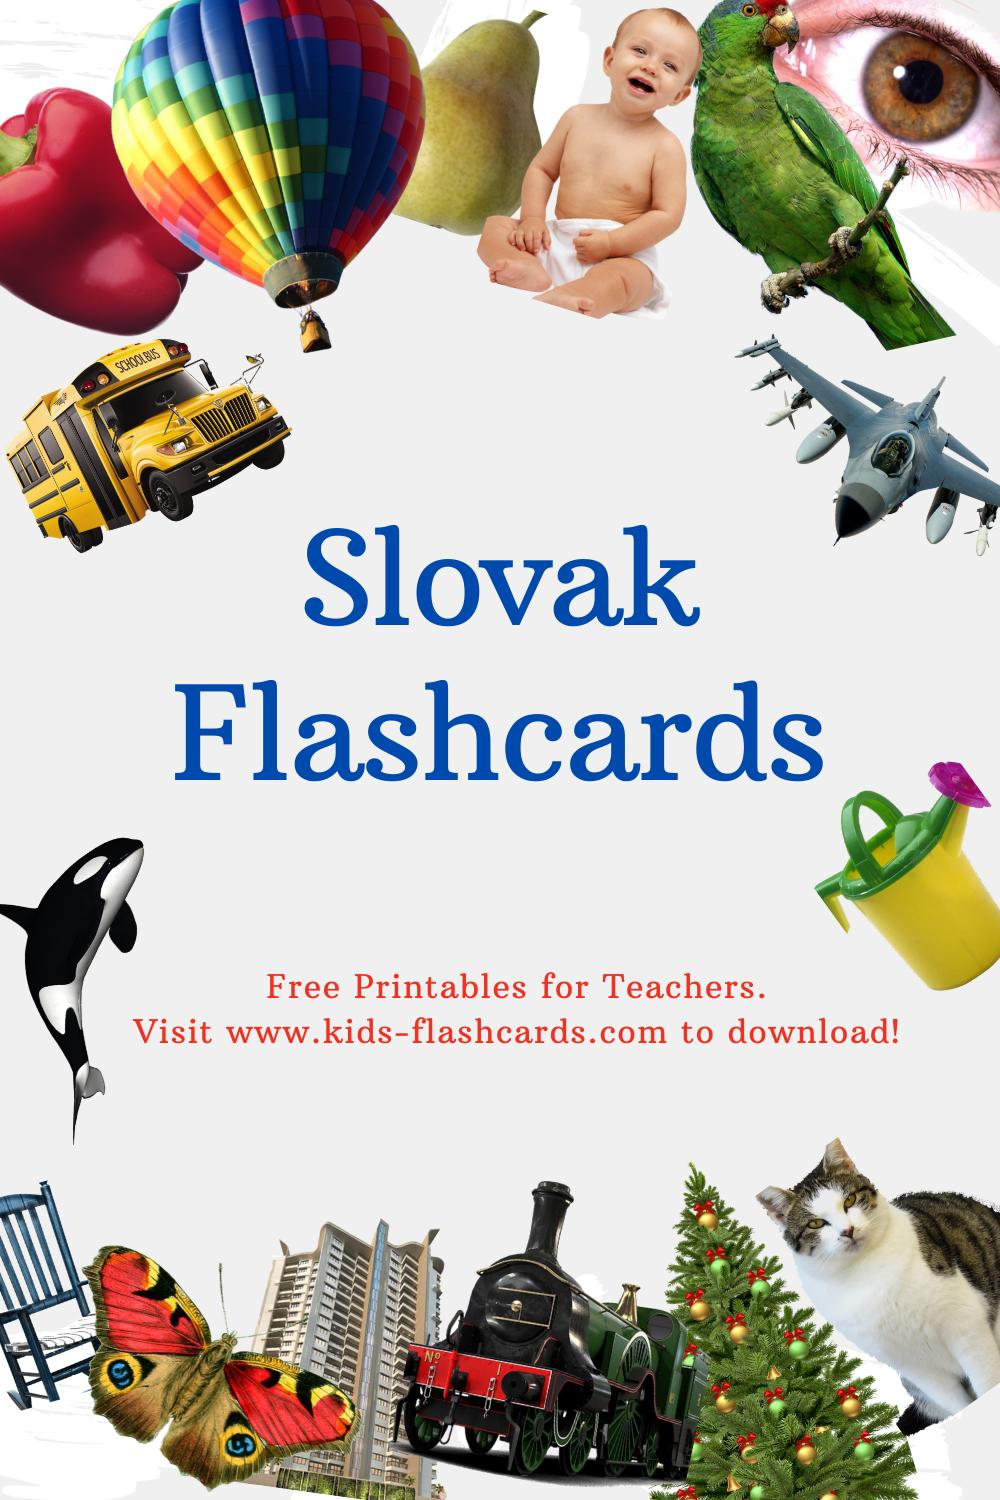 Worksheets to learn Slovak language